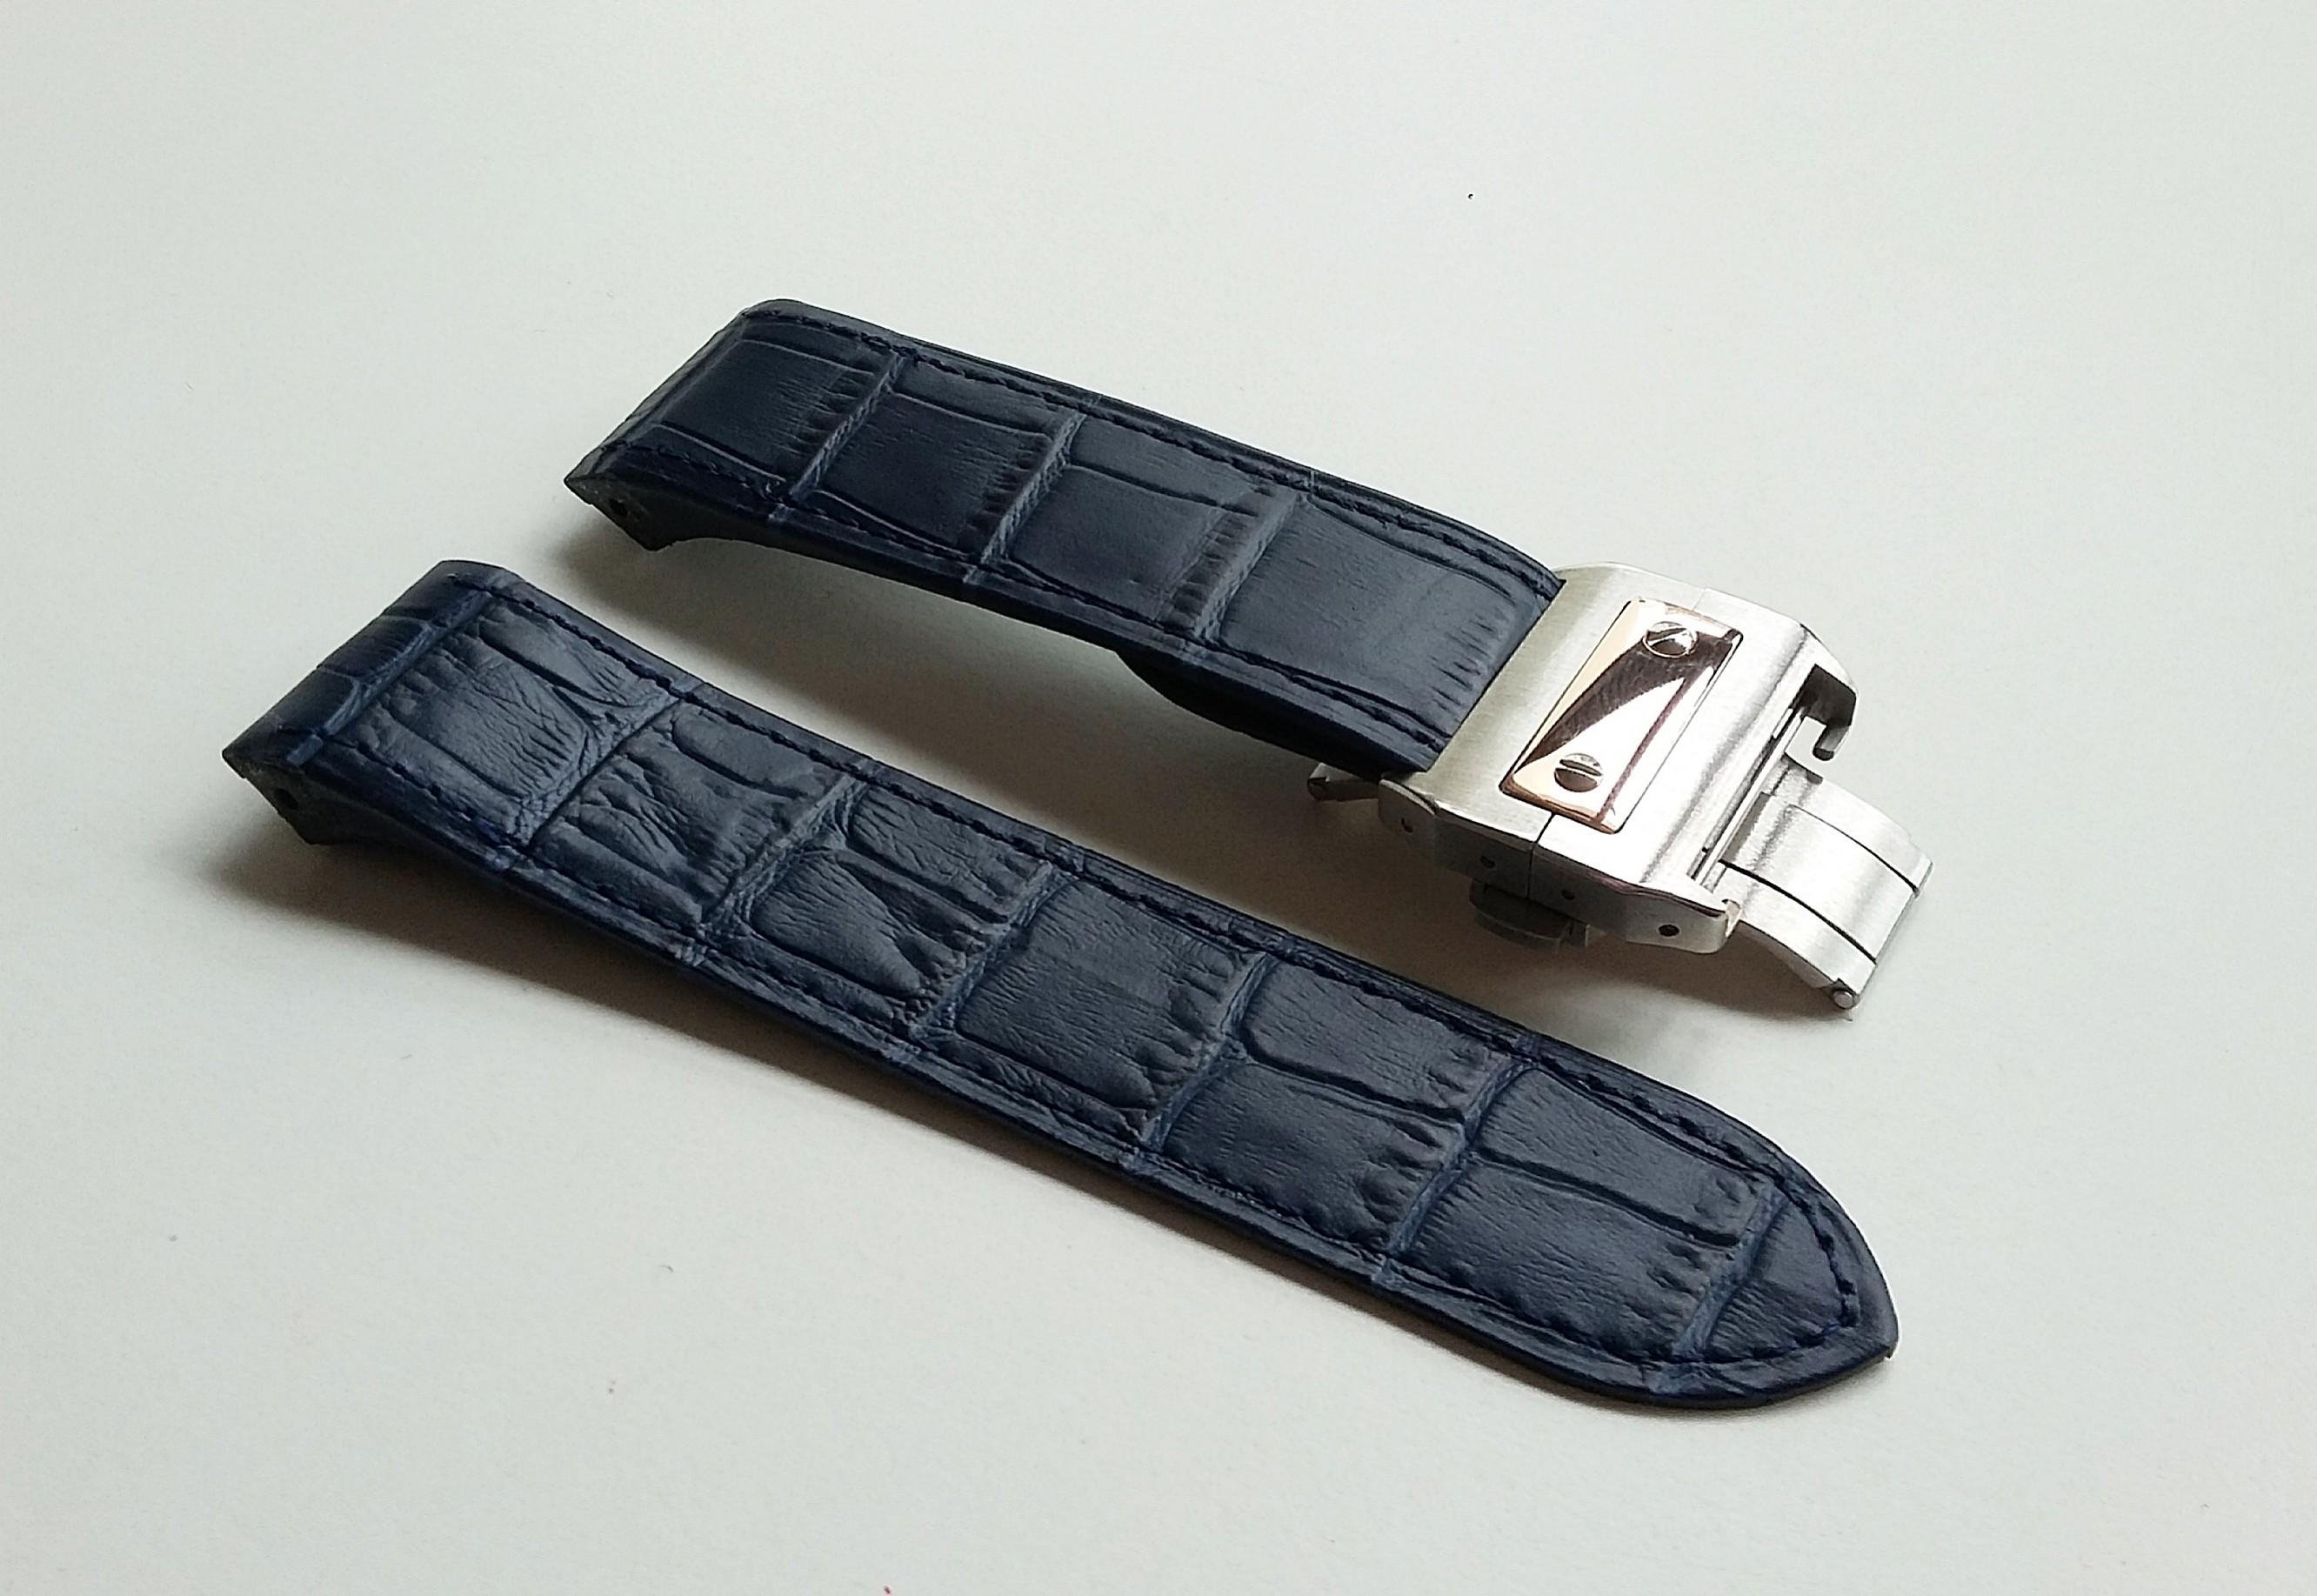 23mm HAND SEWN MIDNIGHT BLUE CALF LEATHER (EMBOSSED CROCODILE GRAIN) STRAP WITH STEEL CLASP FOR CARTIER SANTOS 100